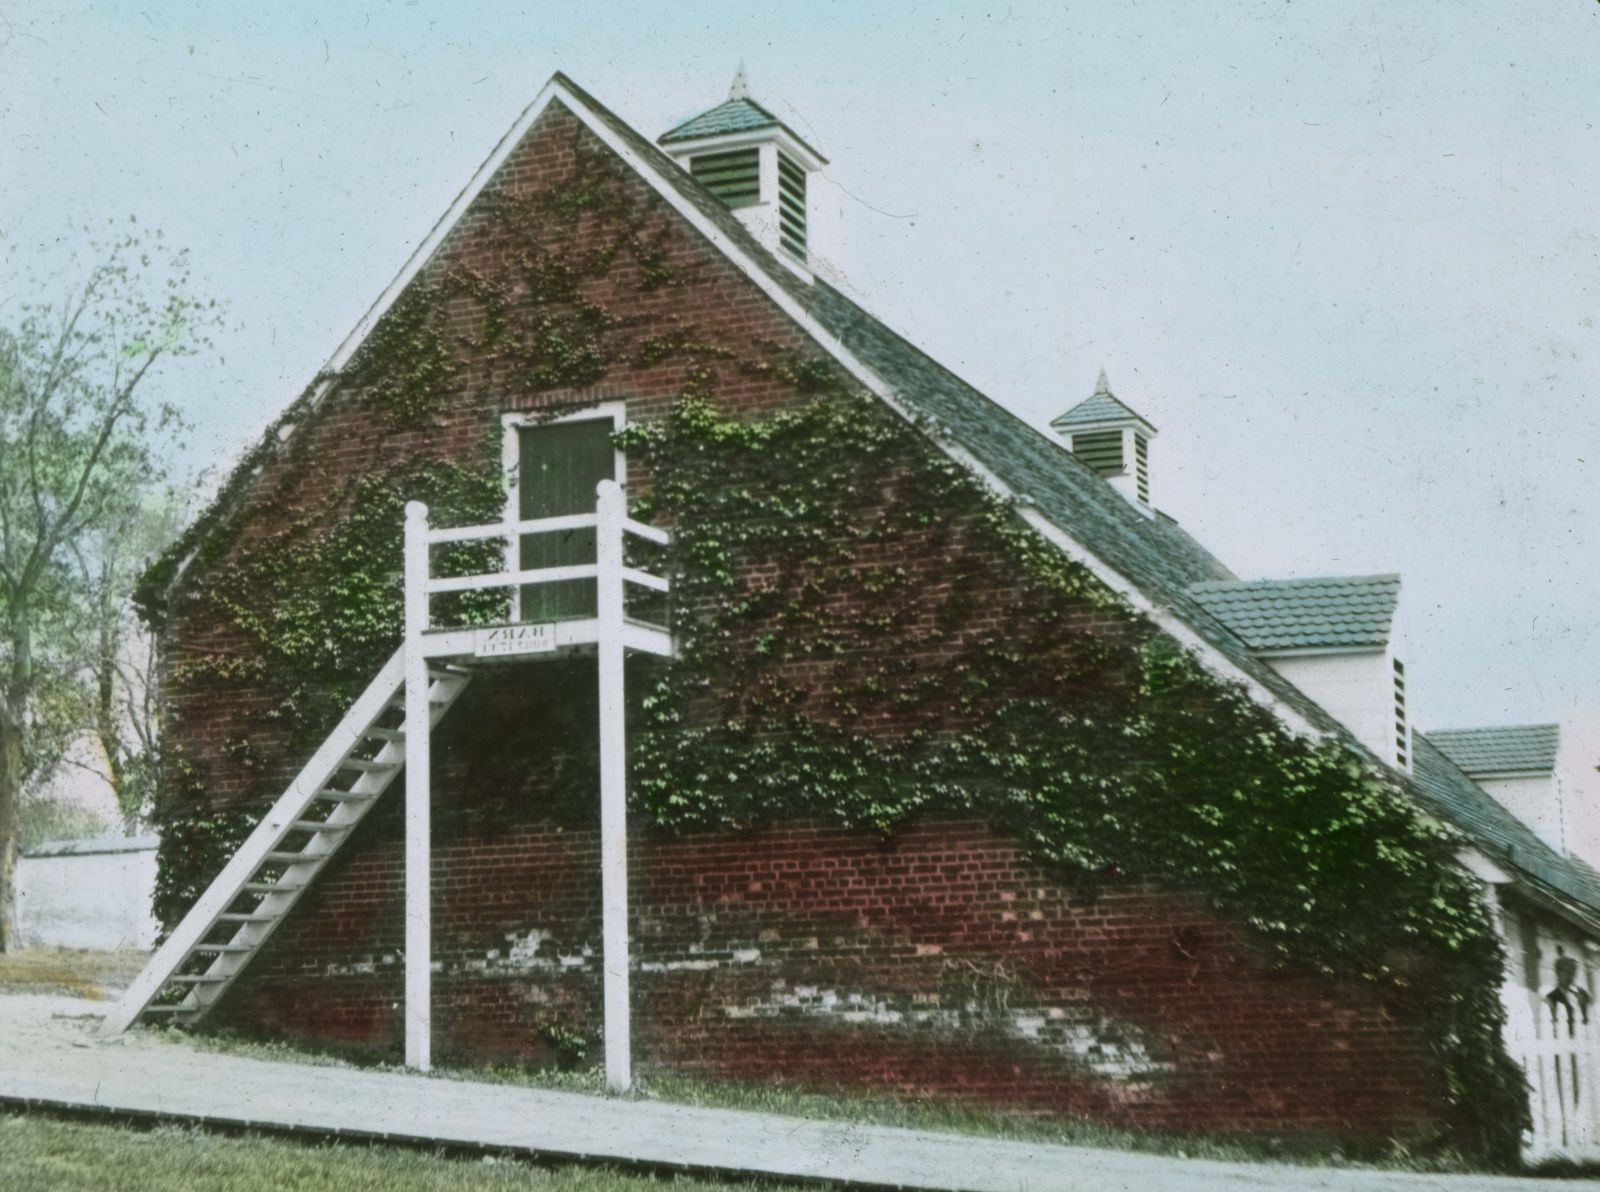 The brick wall of a red barn faces the viewer. Ivy crawls over the wall and around a door situated on the second story of the barn, from which lead white steps down the ground.